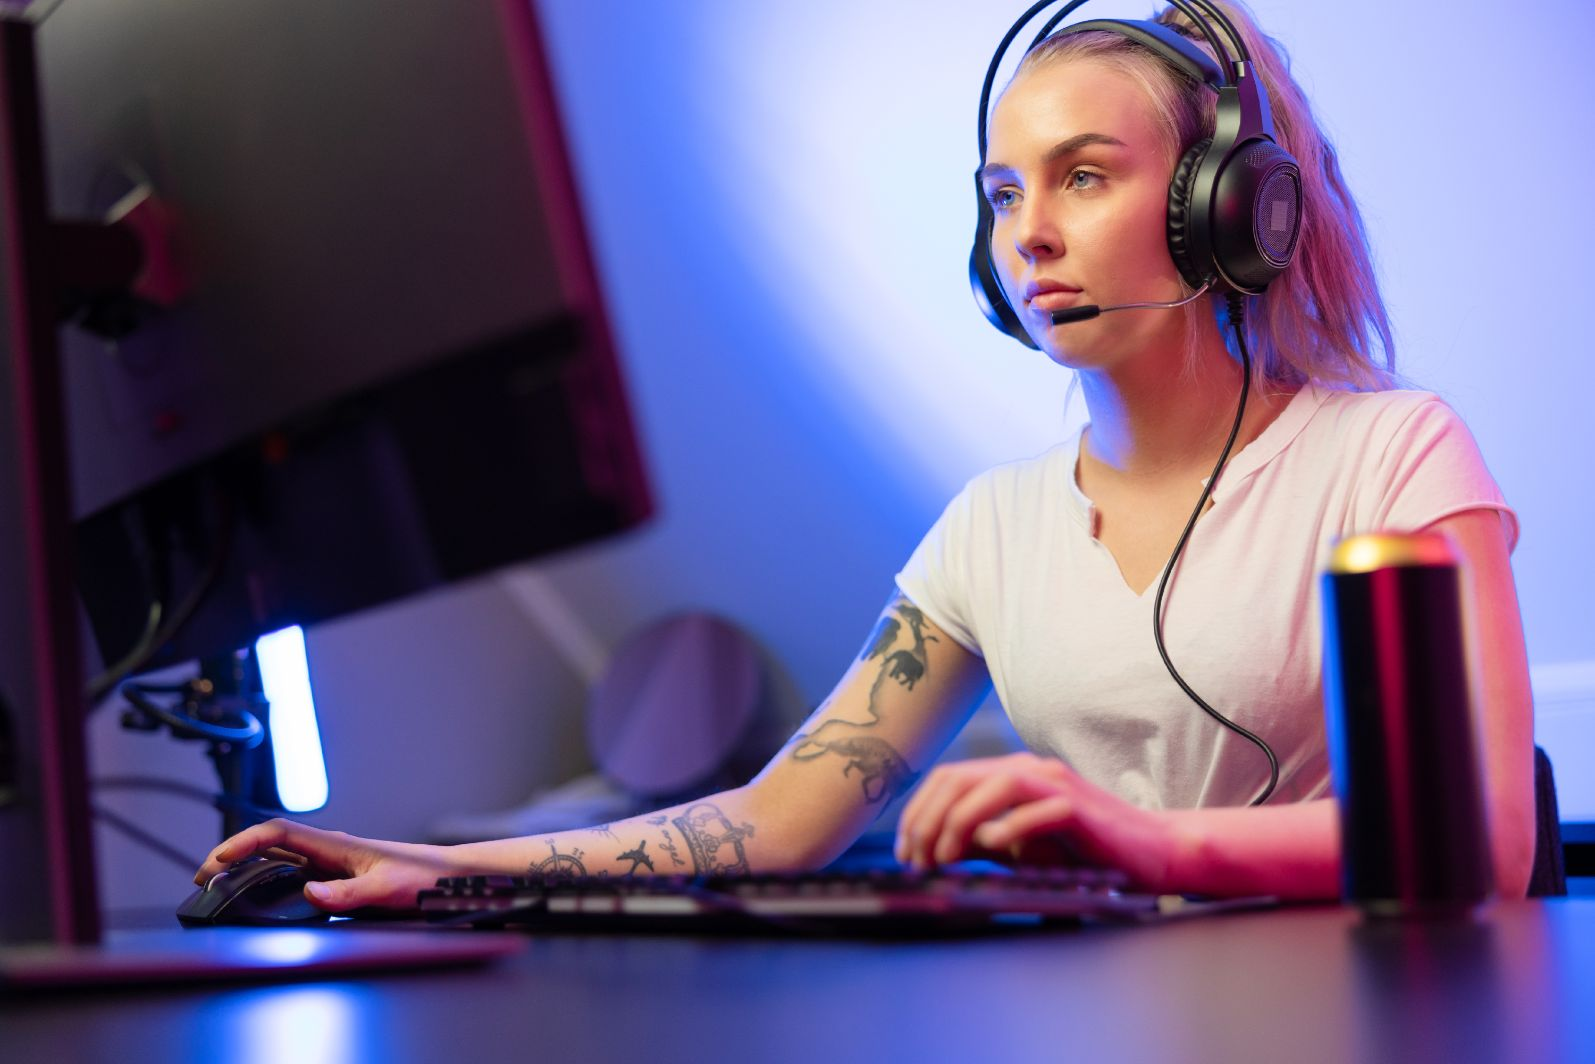 professional gamer girl with headset play online m FWZNTJ